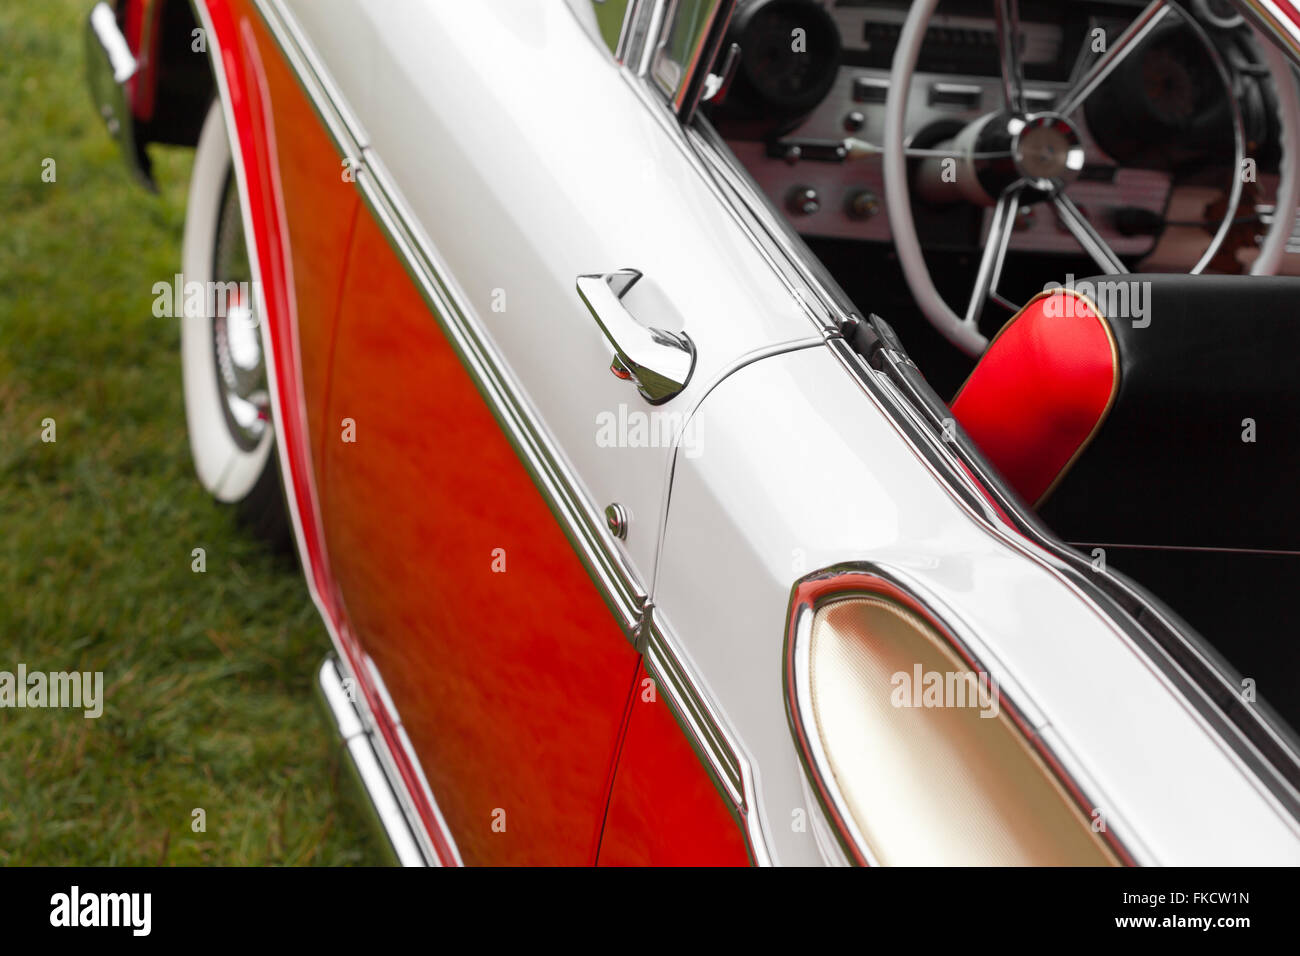 Car handle of a red and white classic convertible vintage car - Stock Image